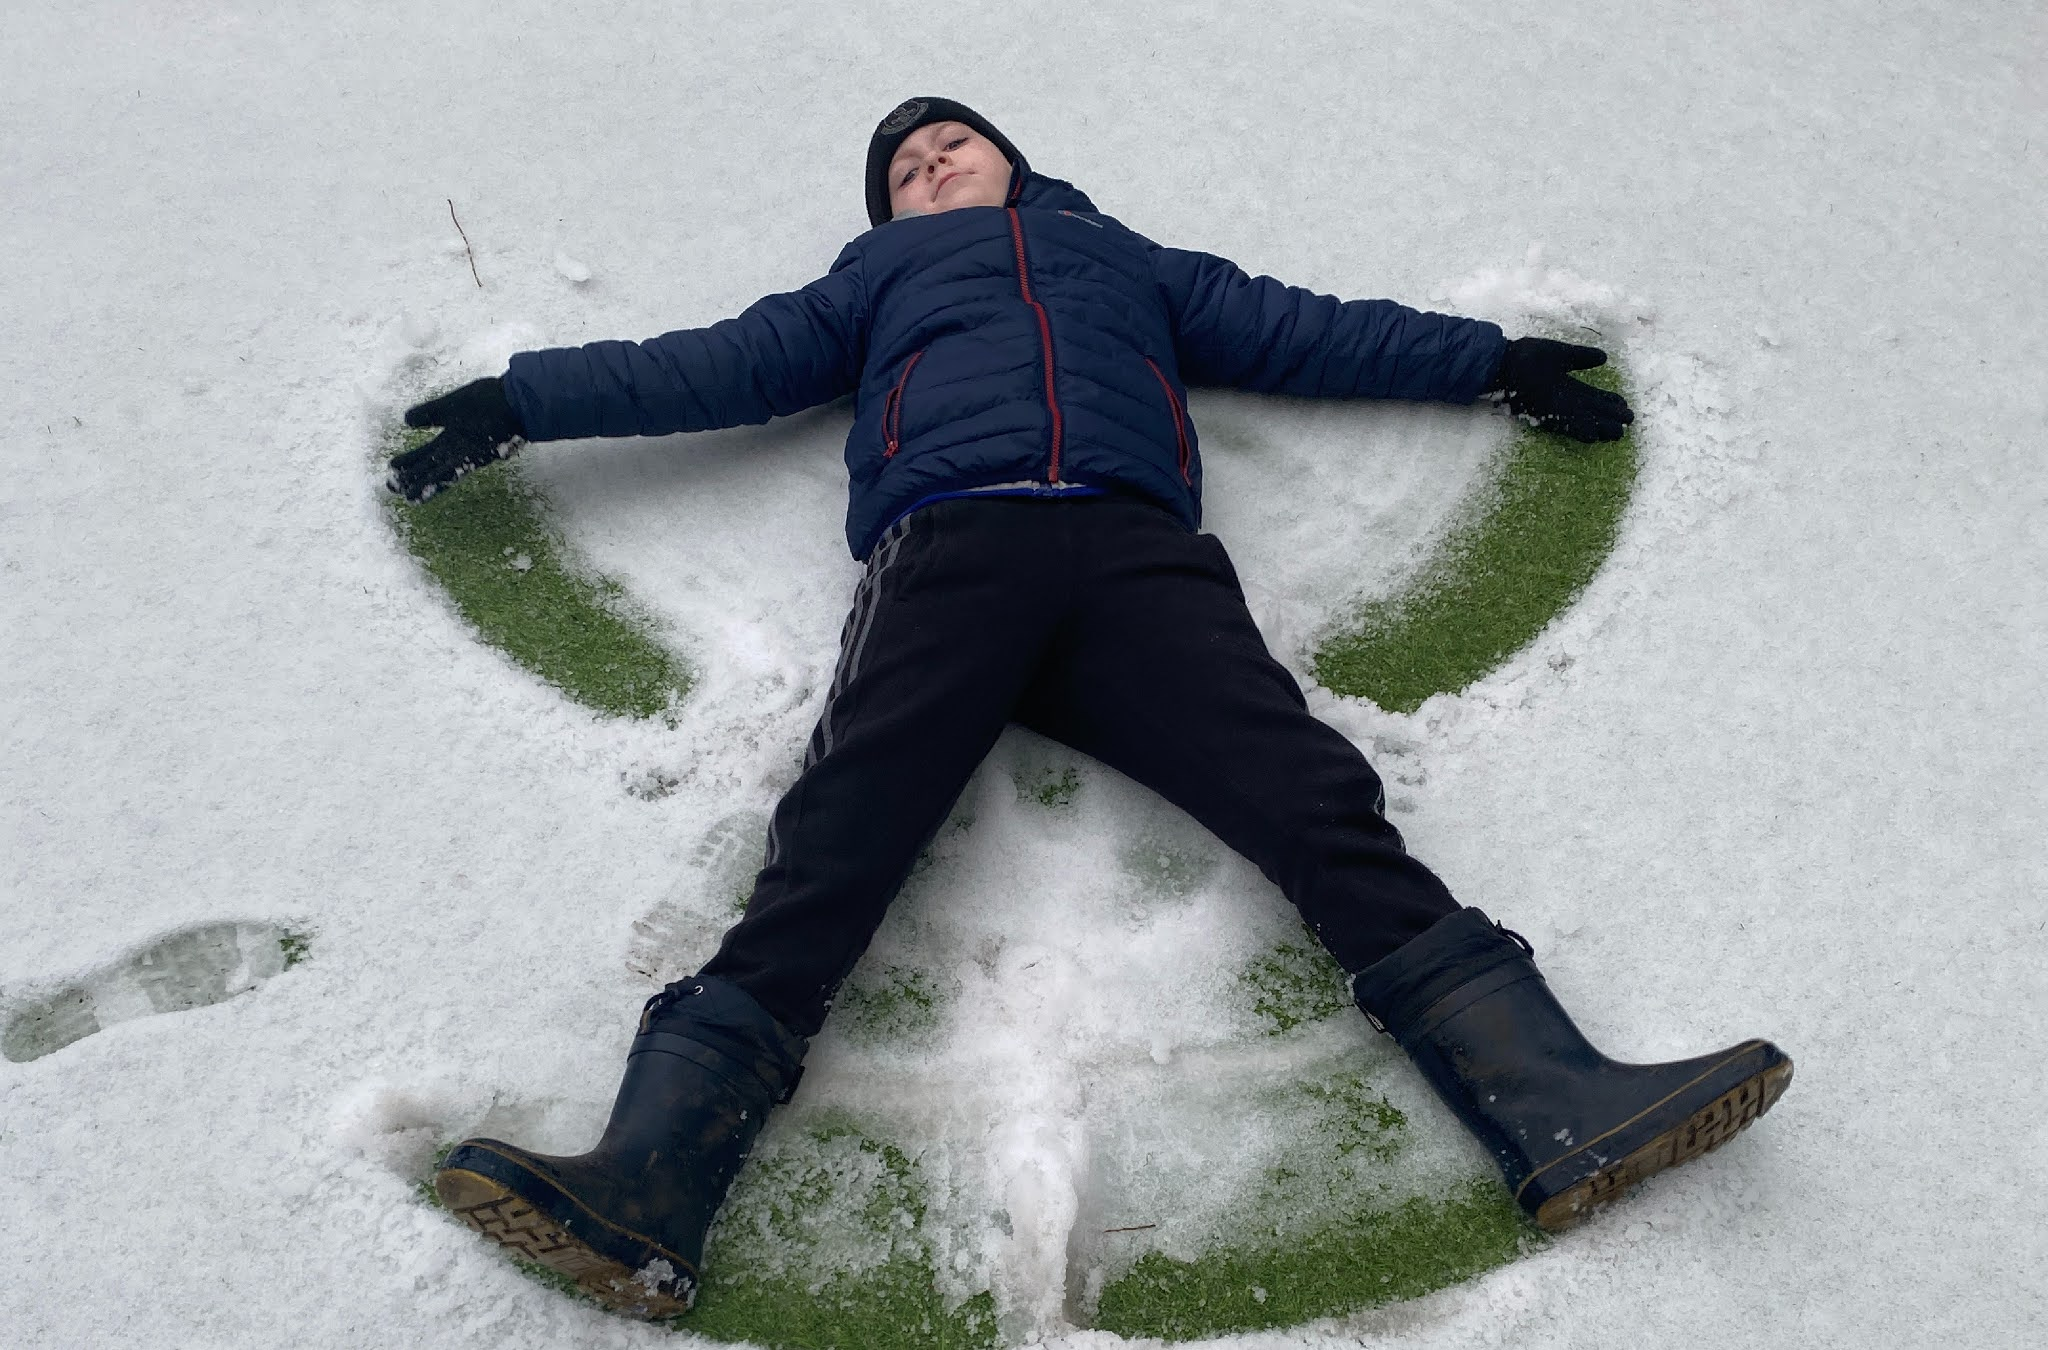 a boy making a snow angel in the snow